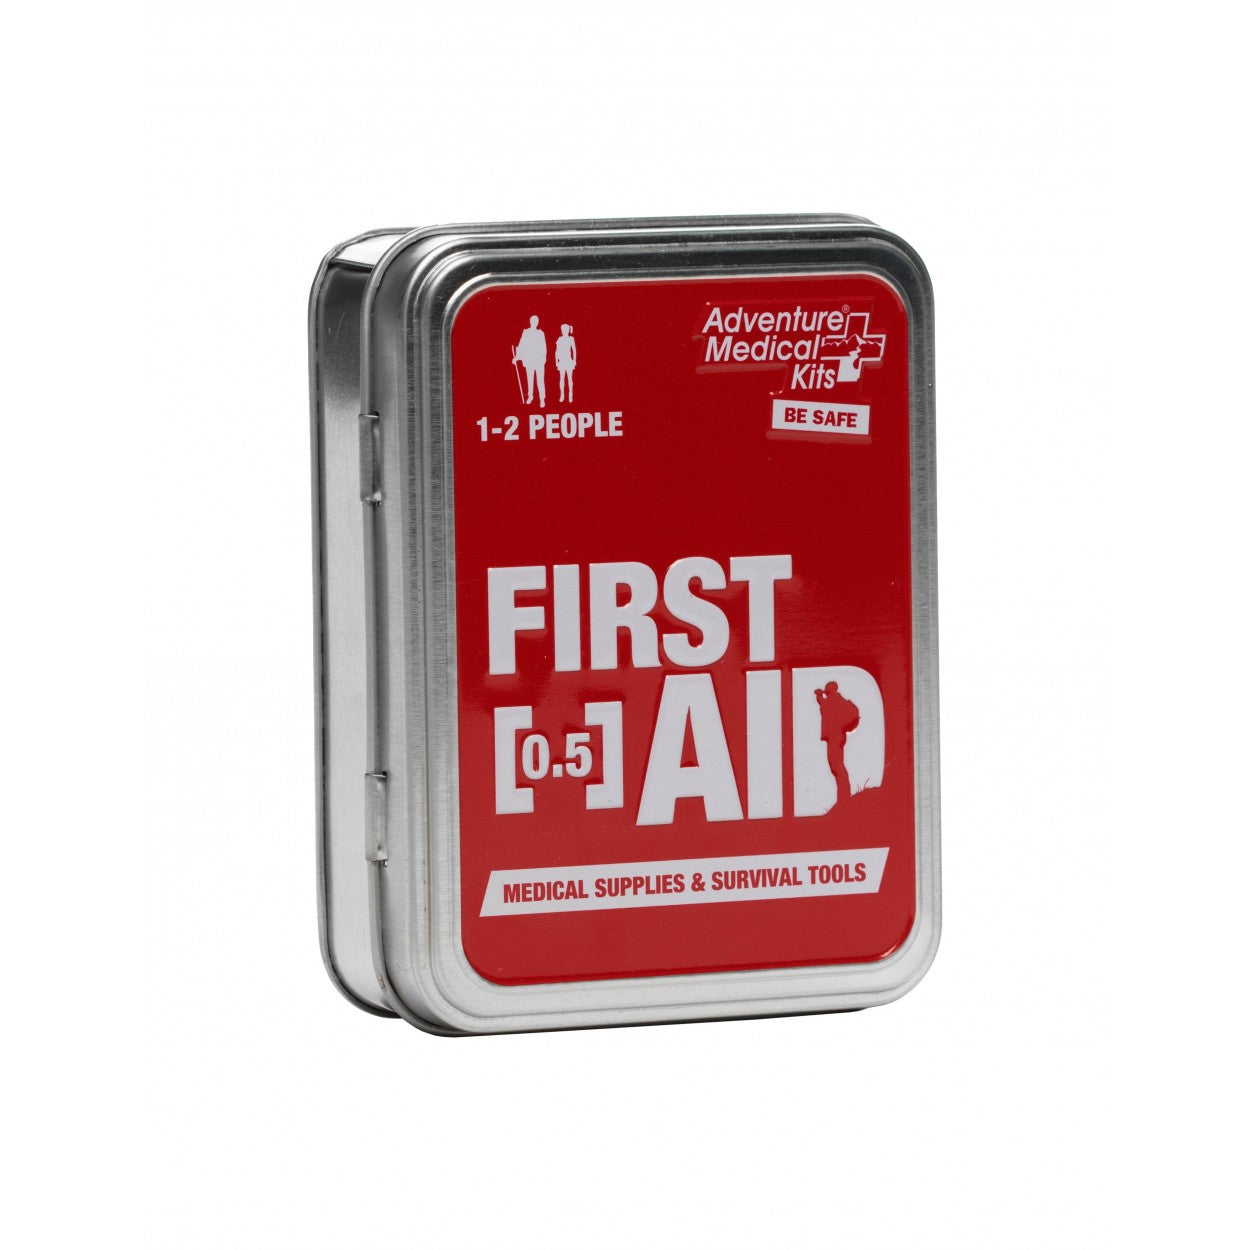 Adventure First Aid, 0.5 Oz Tin By Tender Corporation/adventure Medical Kits